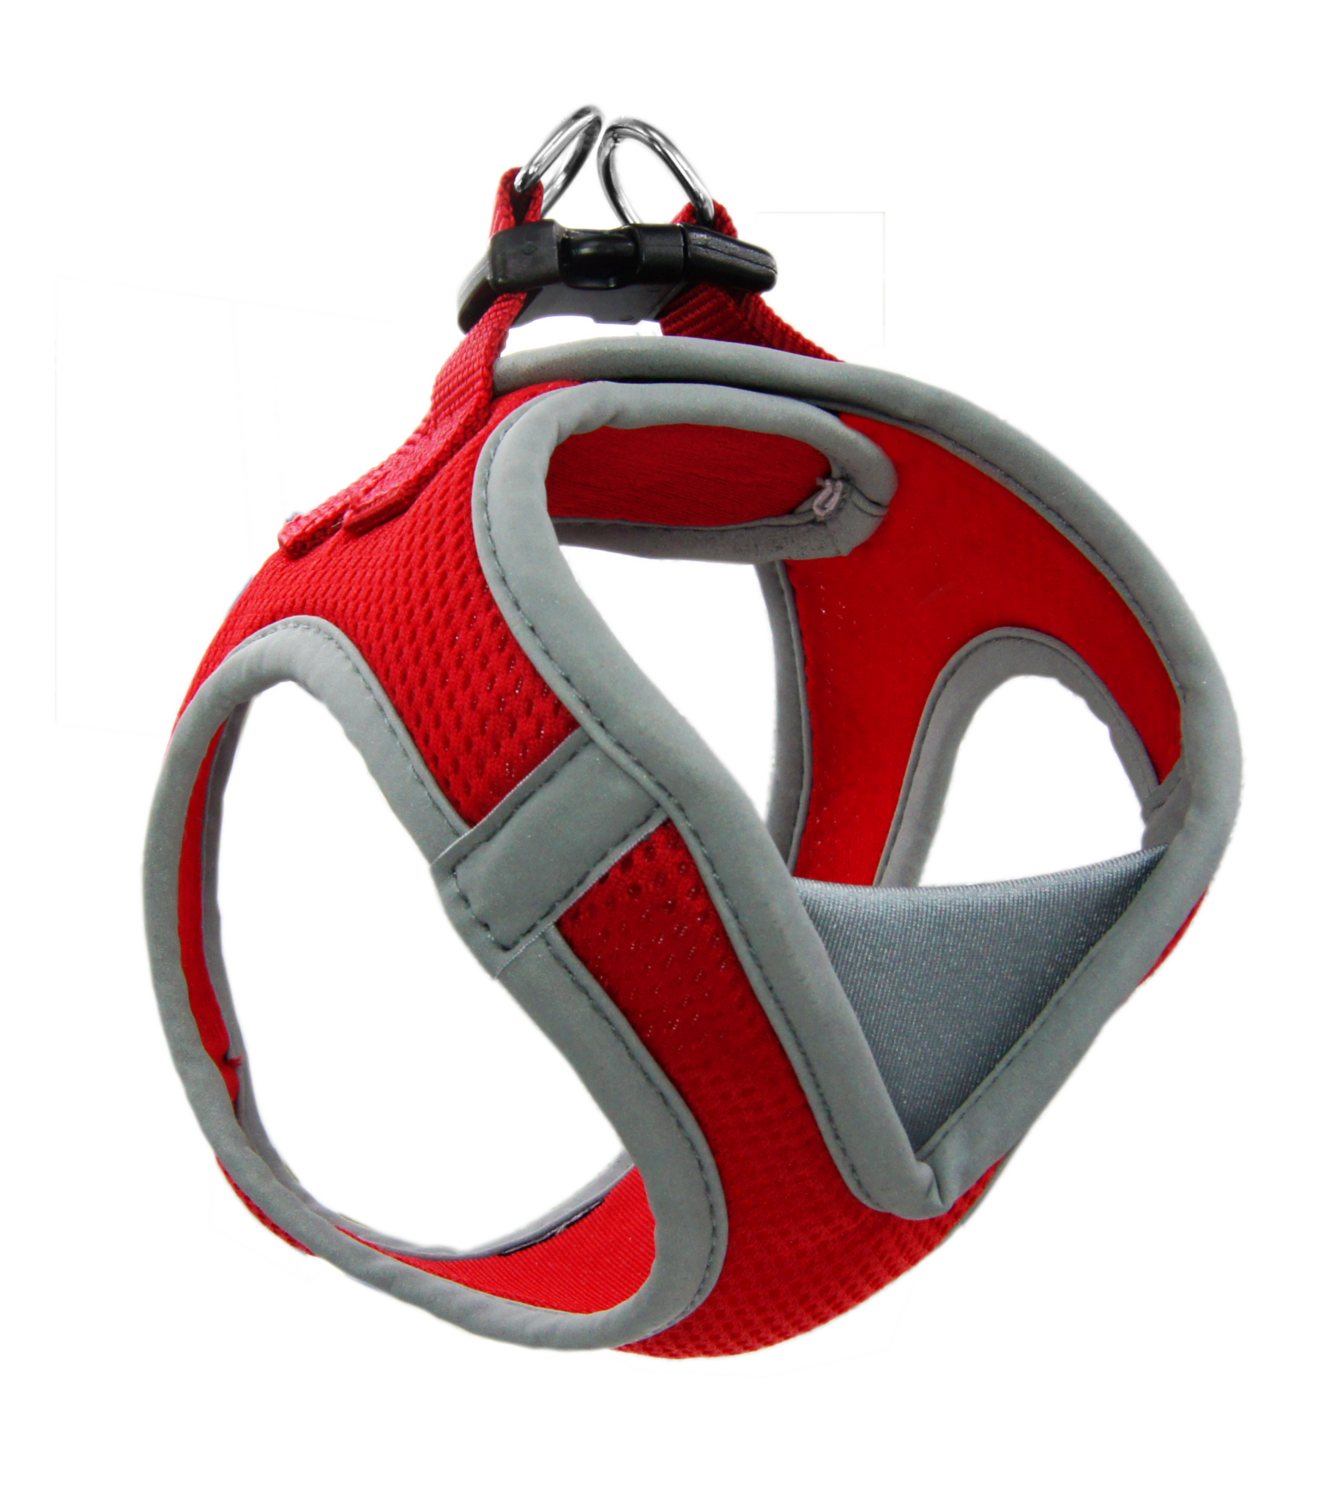 Athletica Quick Fit V Mesh Harness (MEDIUM)